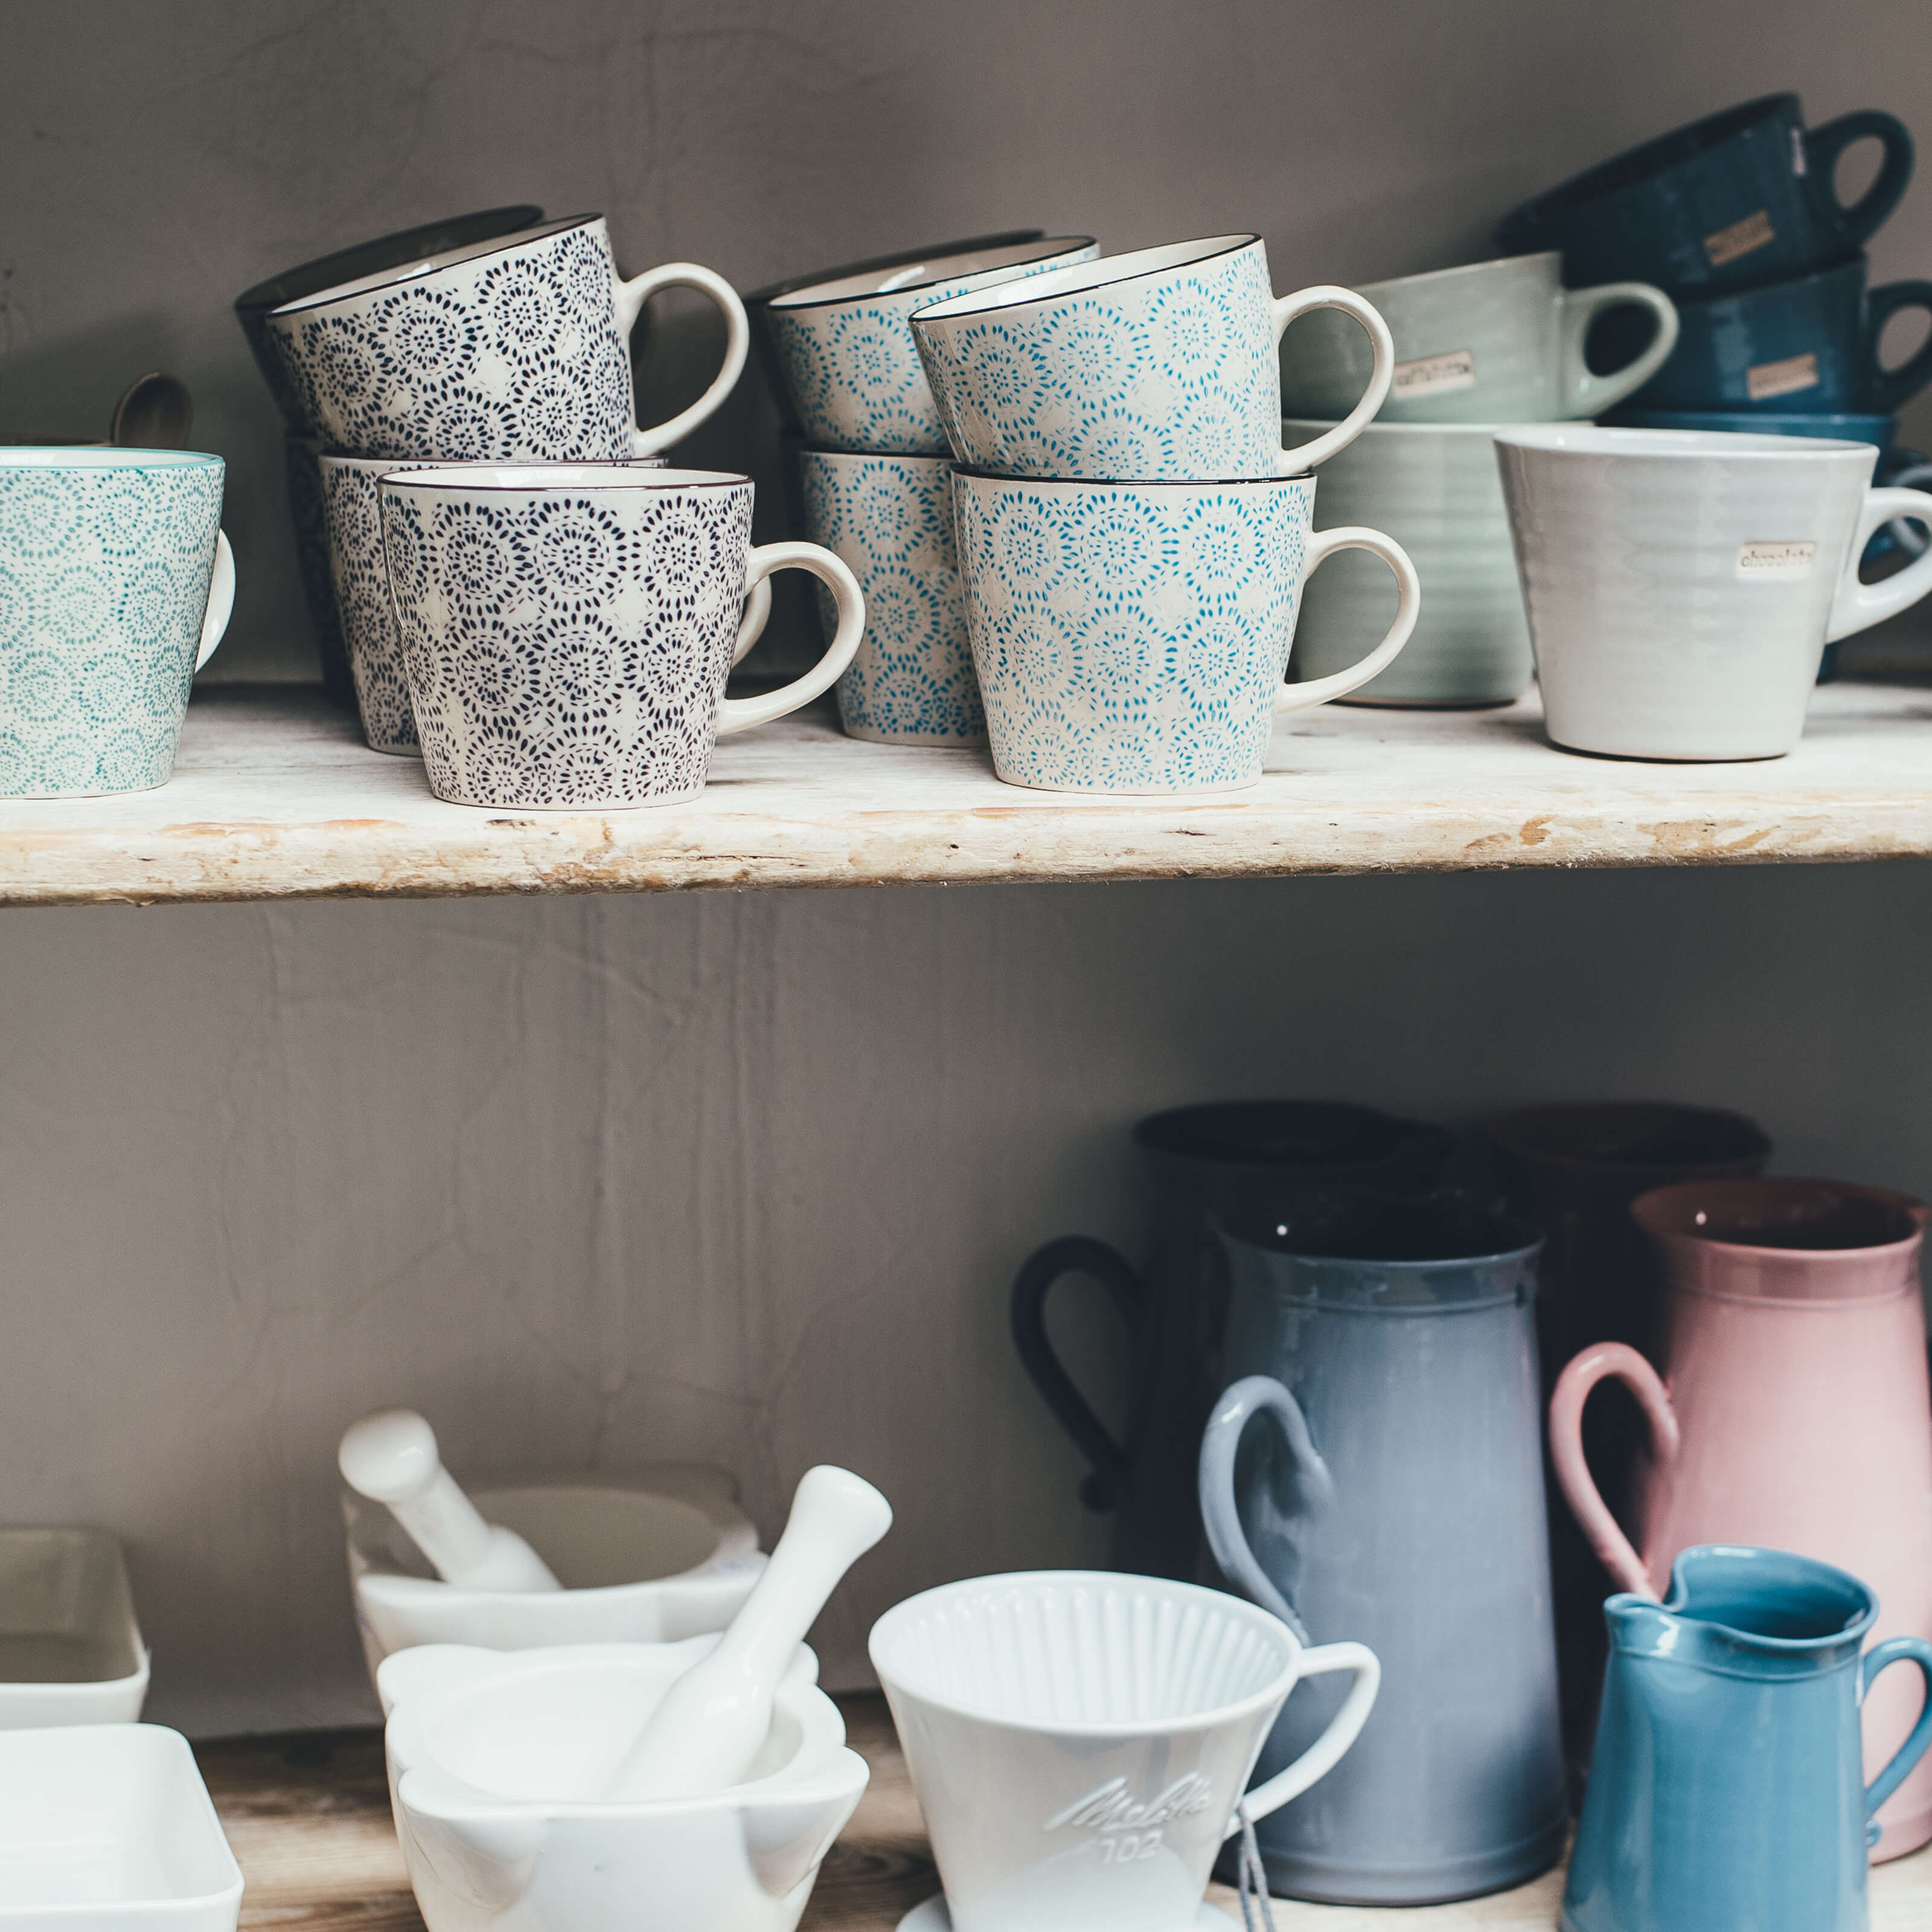 stacked tea cups and pitchers on shelves, mortar and pestle